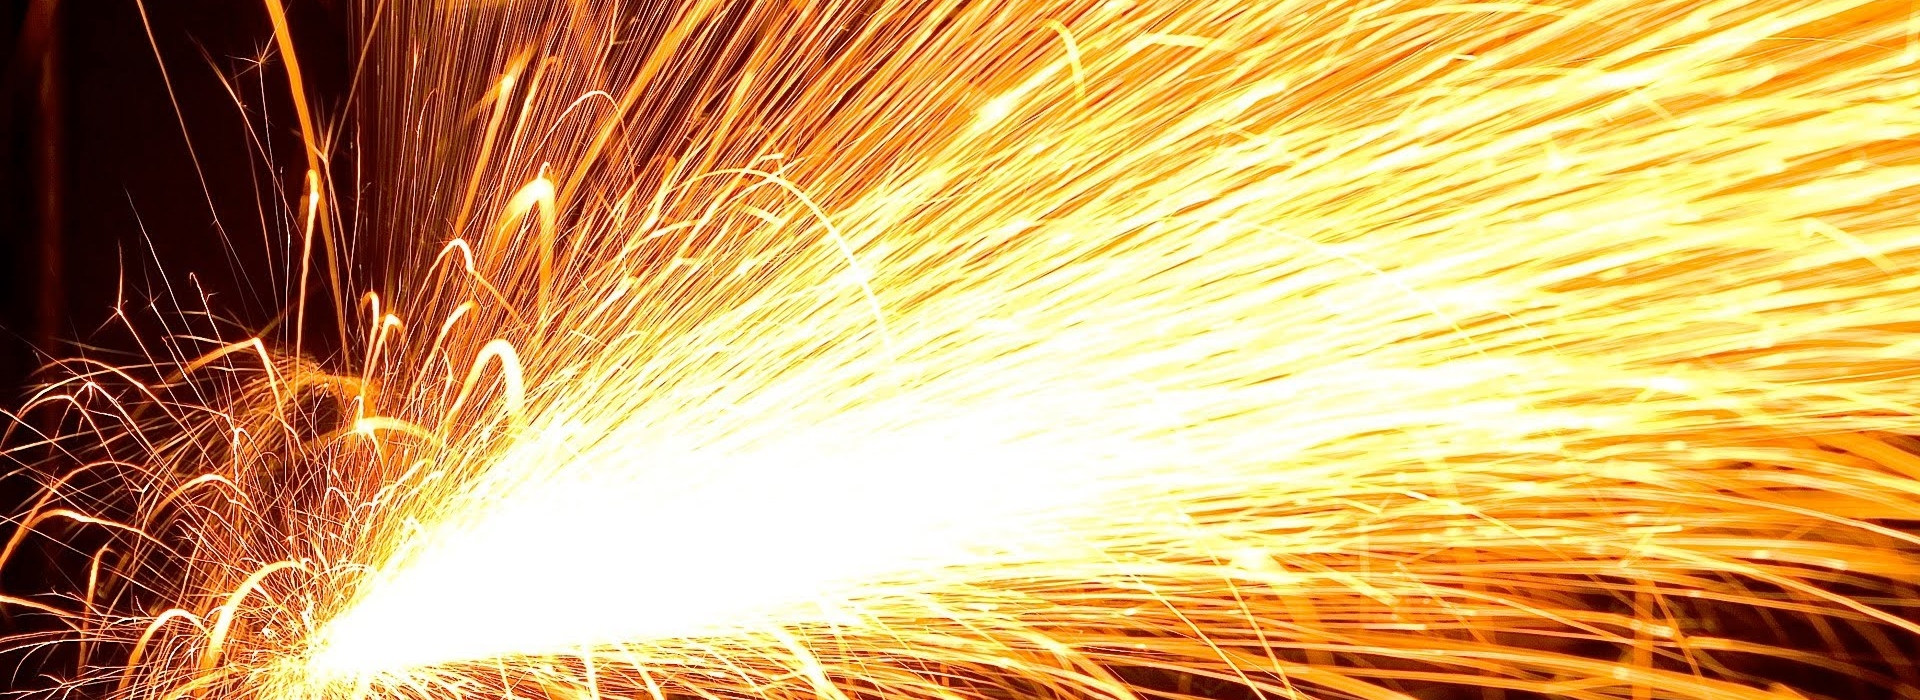 Image of Sparks